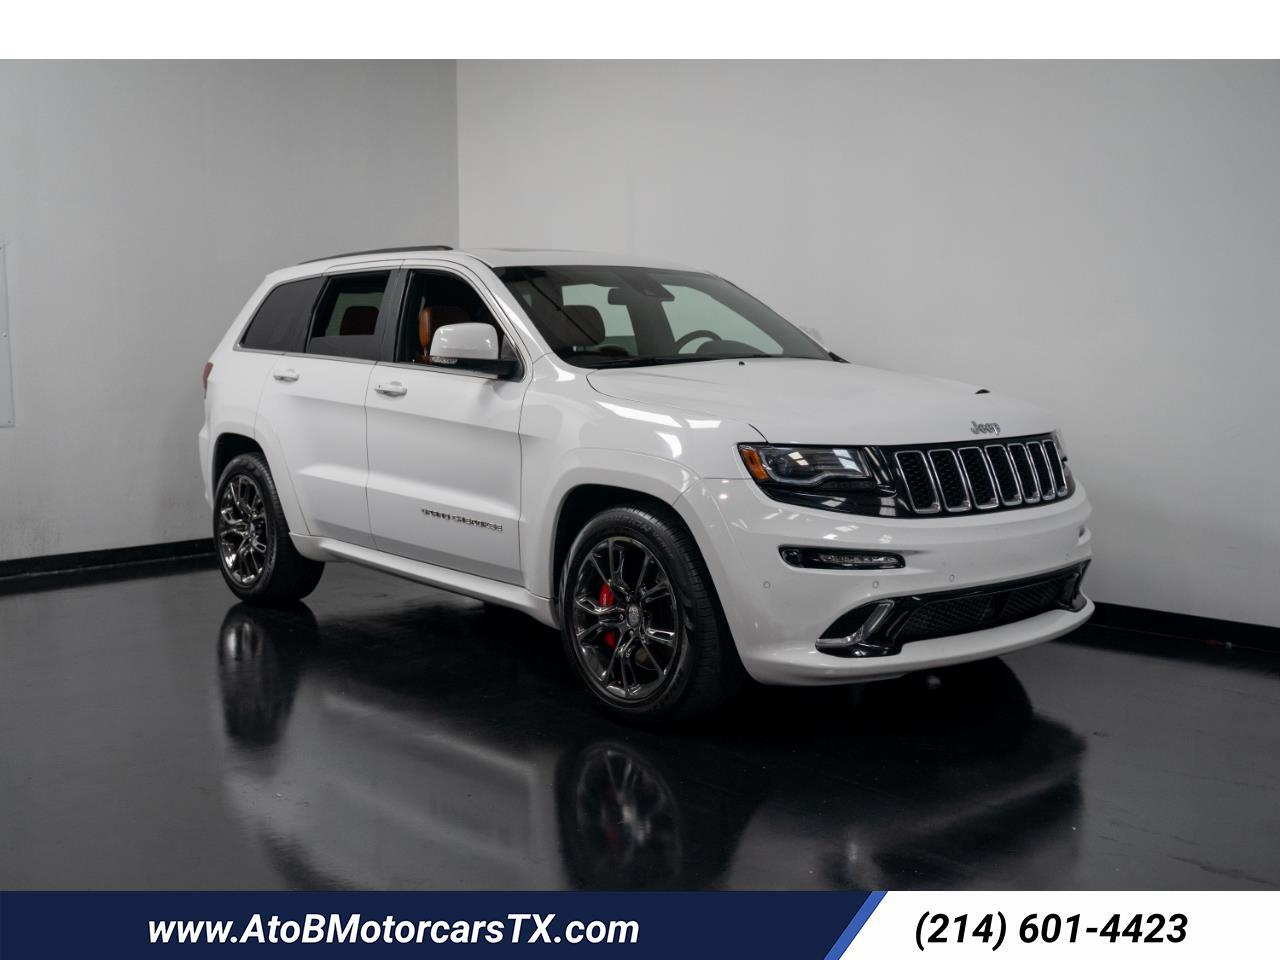 Jeep Grand Cherokee 4WD 4dr SRT8 2014